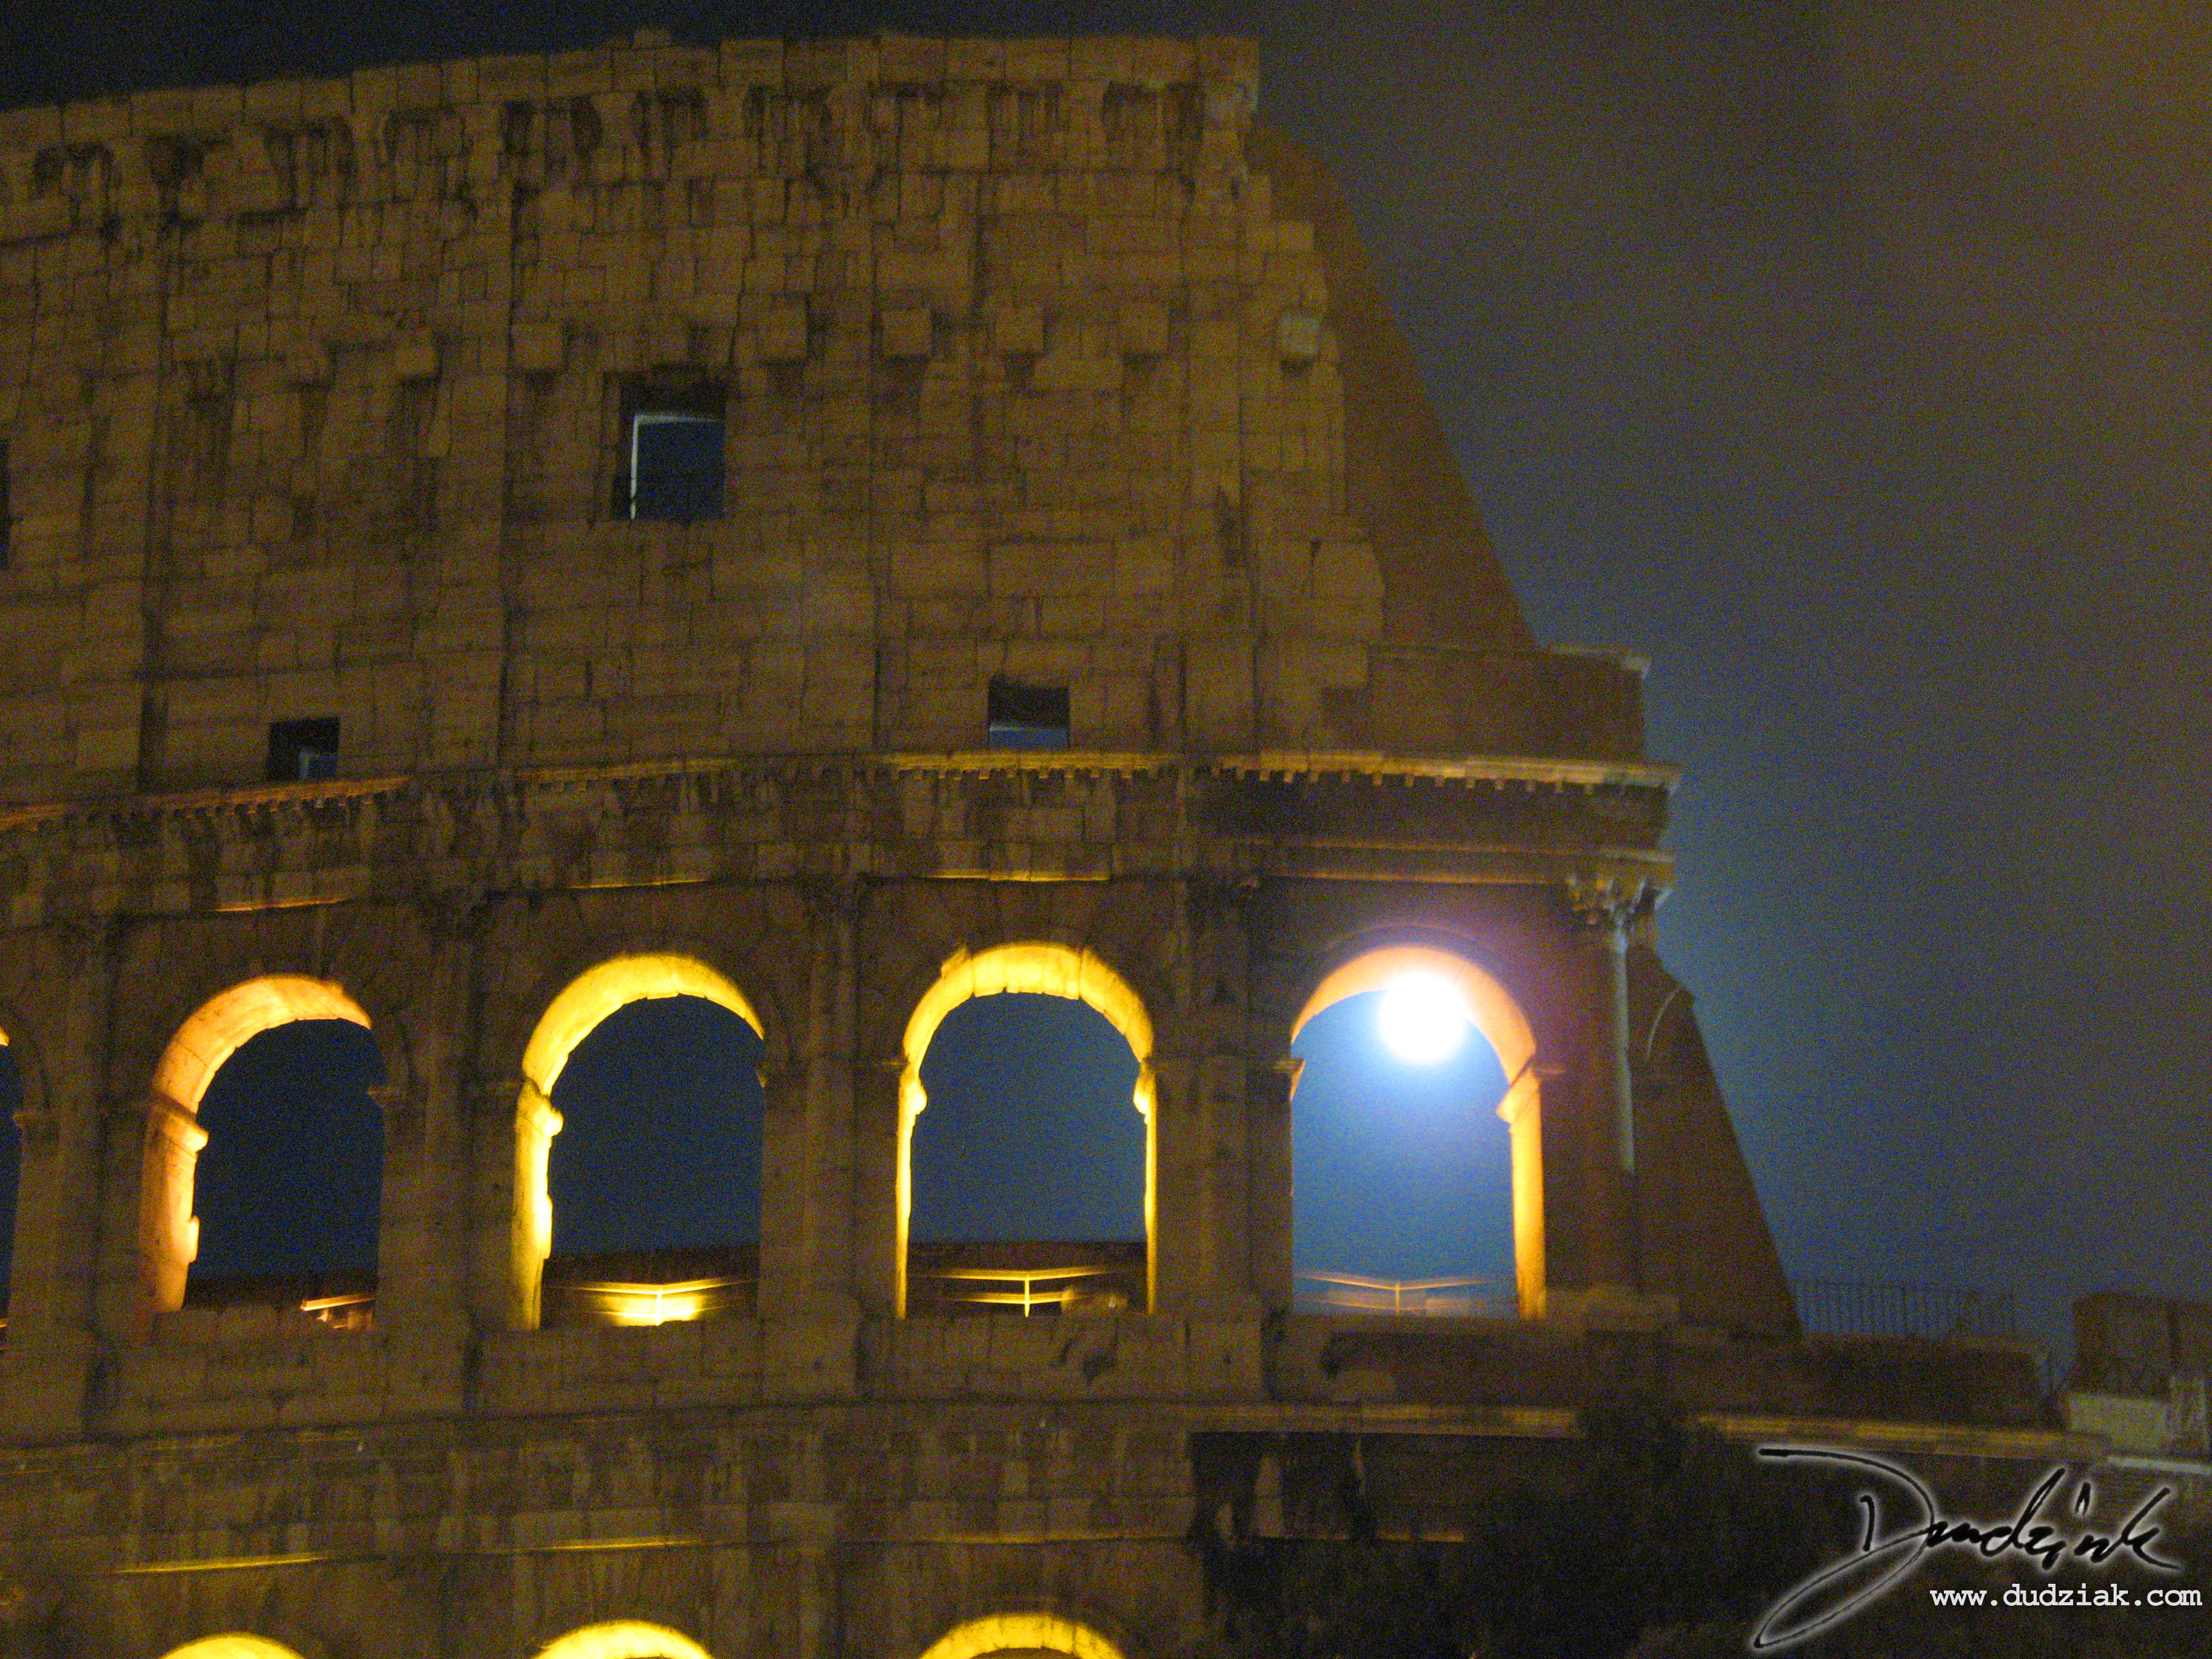 Colosseum,  night,  Italy,  Roma,  Rome,  moon,  Flavian Amphitheatre,  Roman Colosseum,  Roman Arch,  moonlight